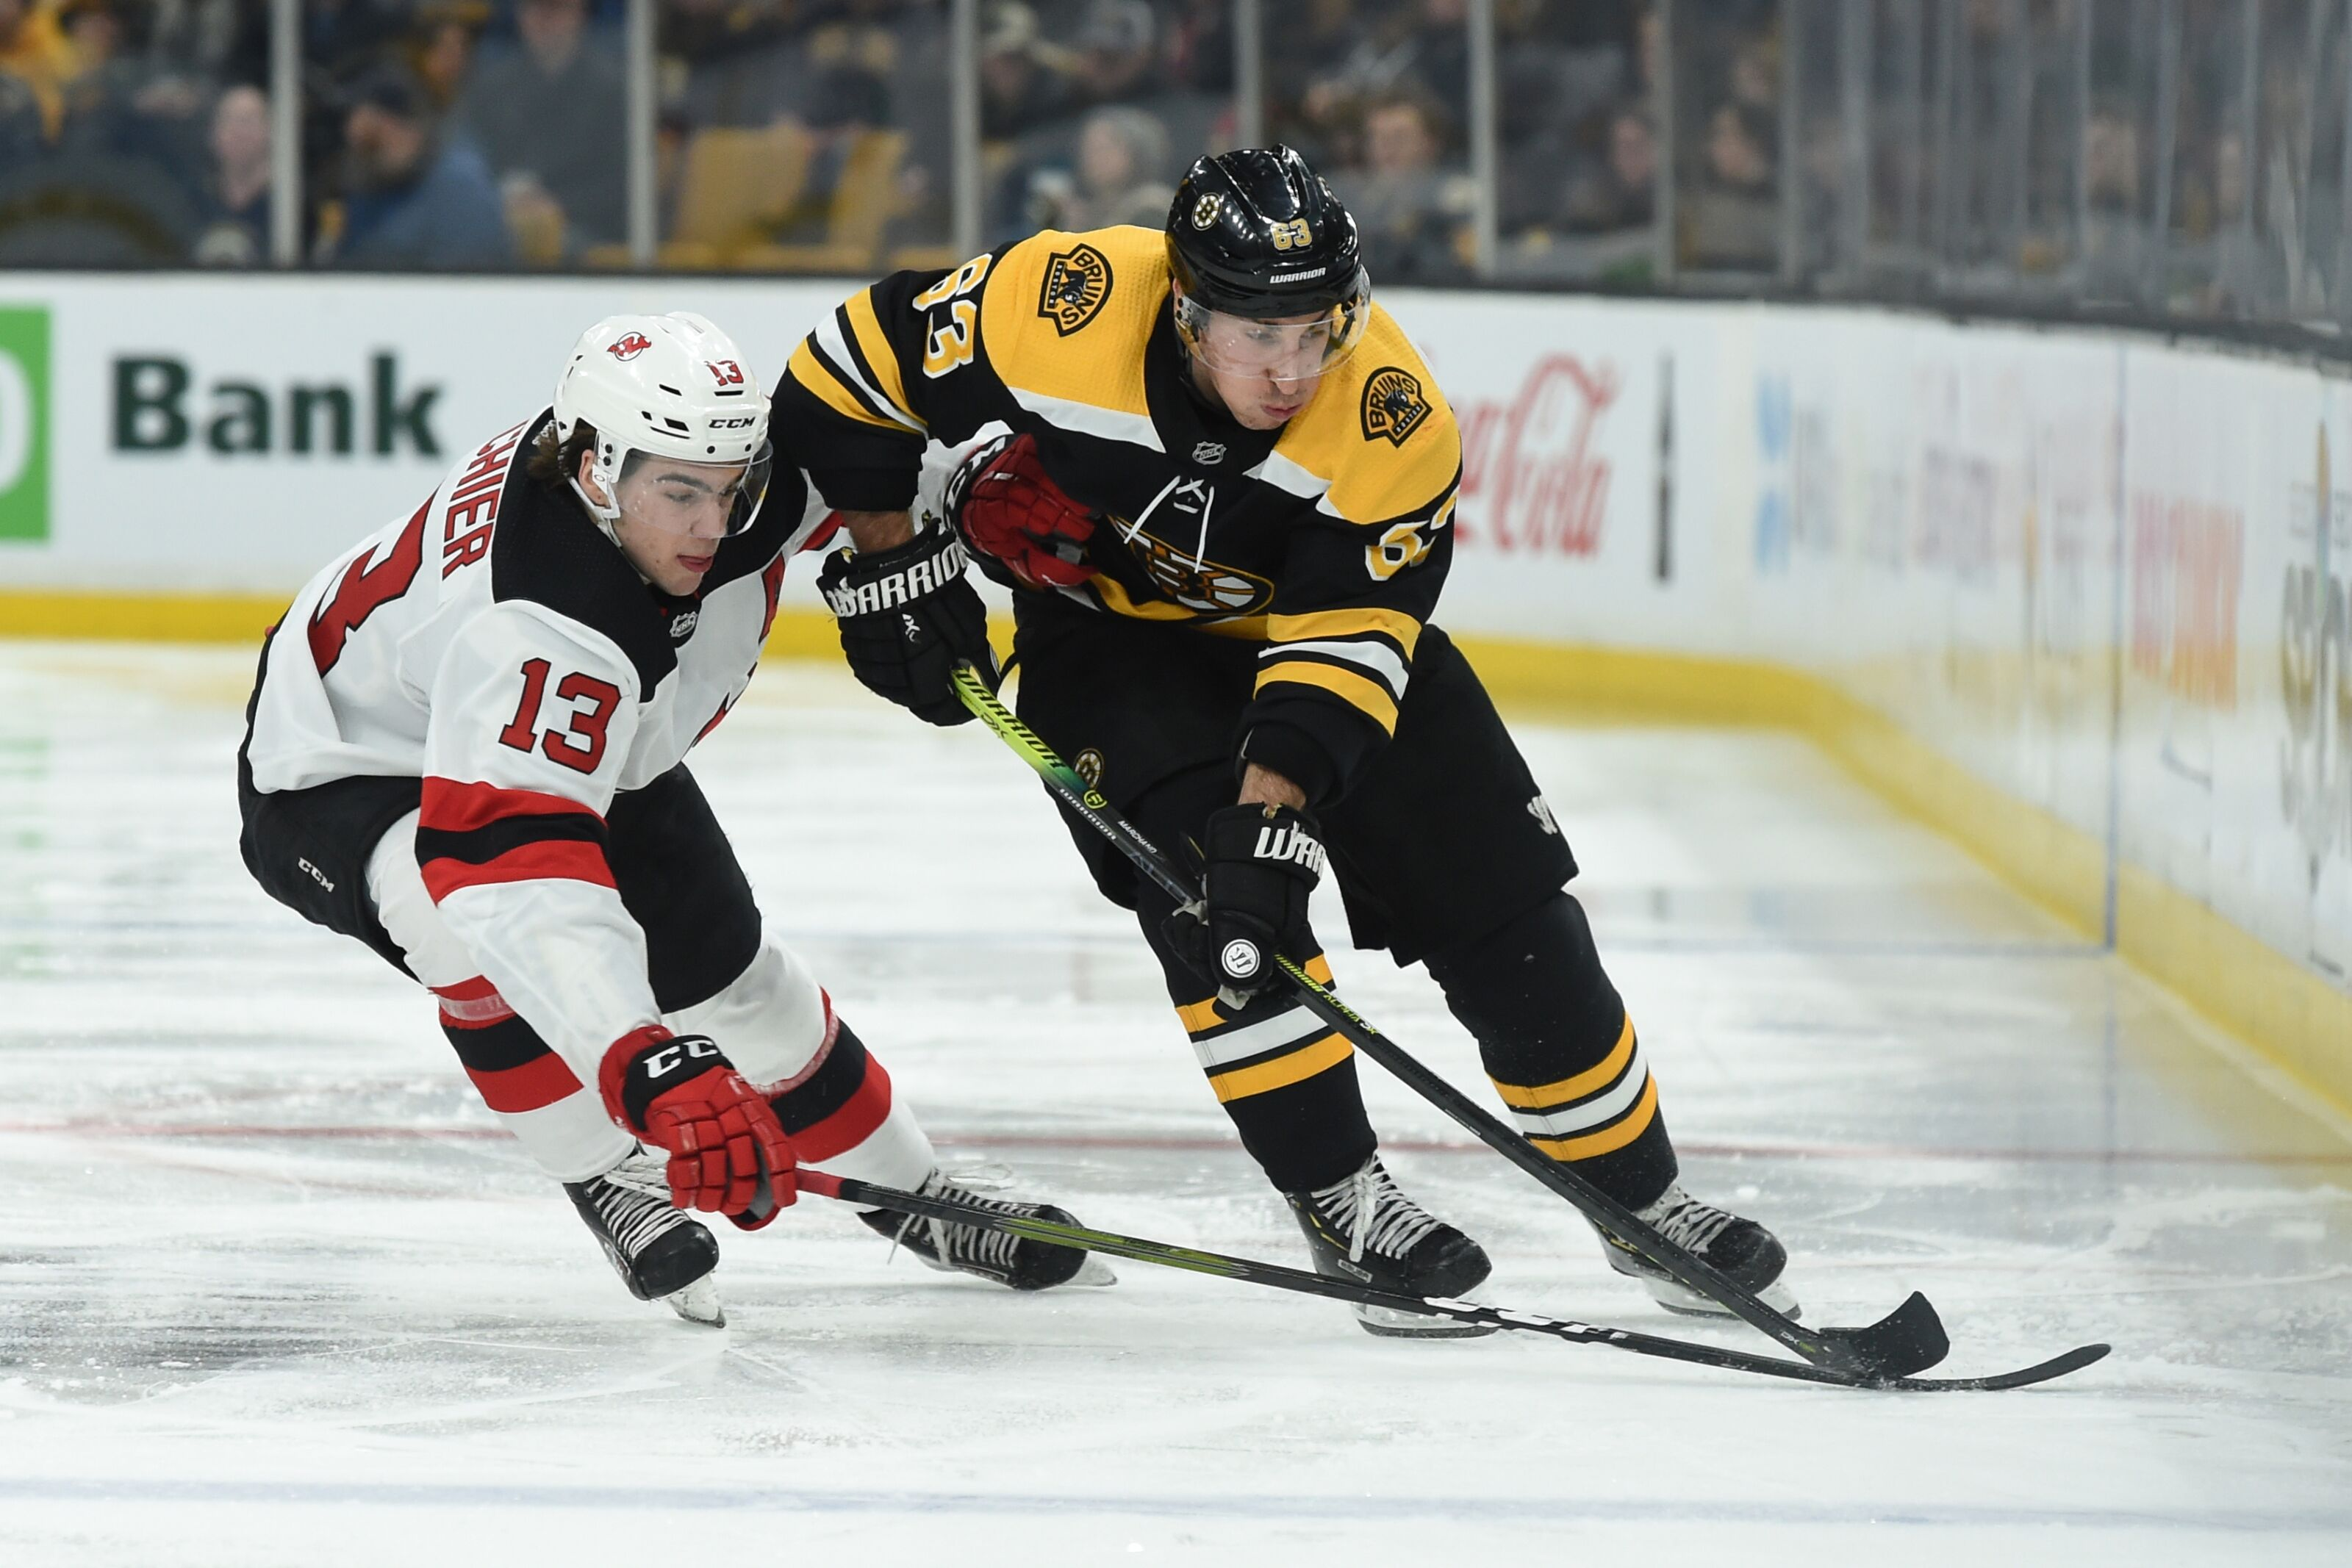 New Jersey Devils: Boston Bruins Top Line Is Main Priority